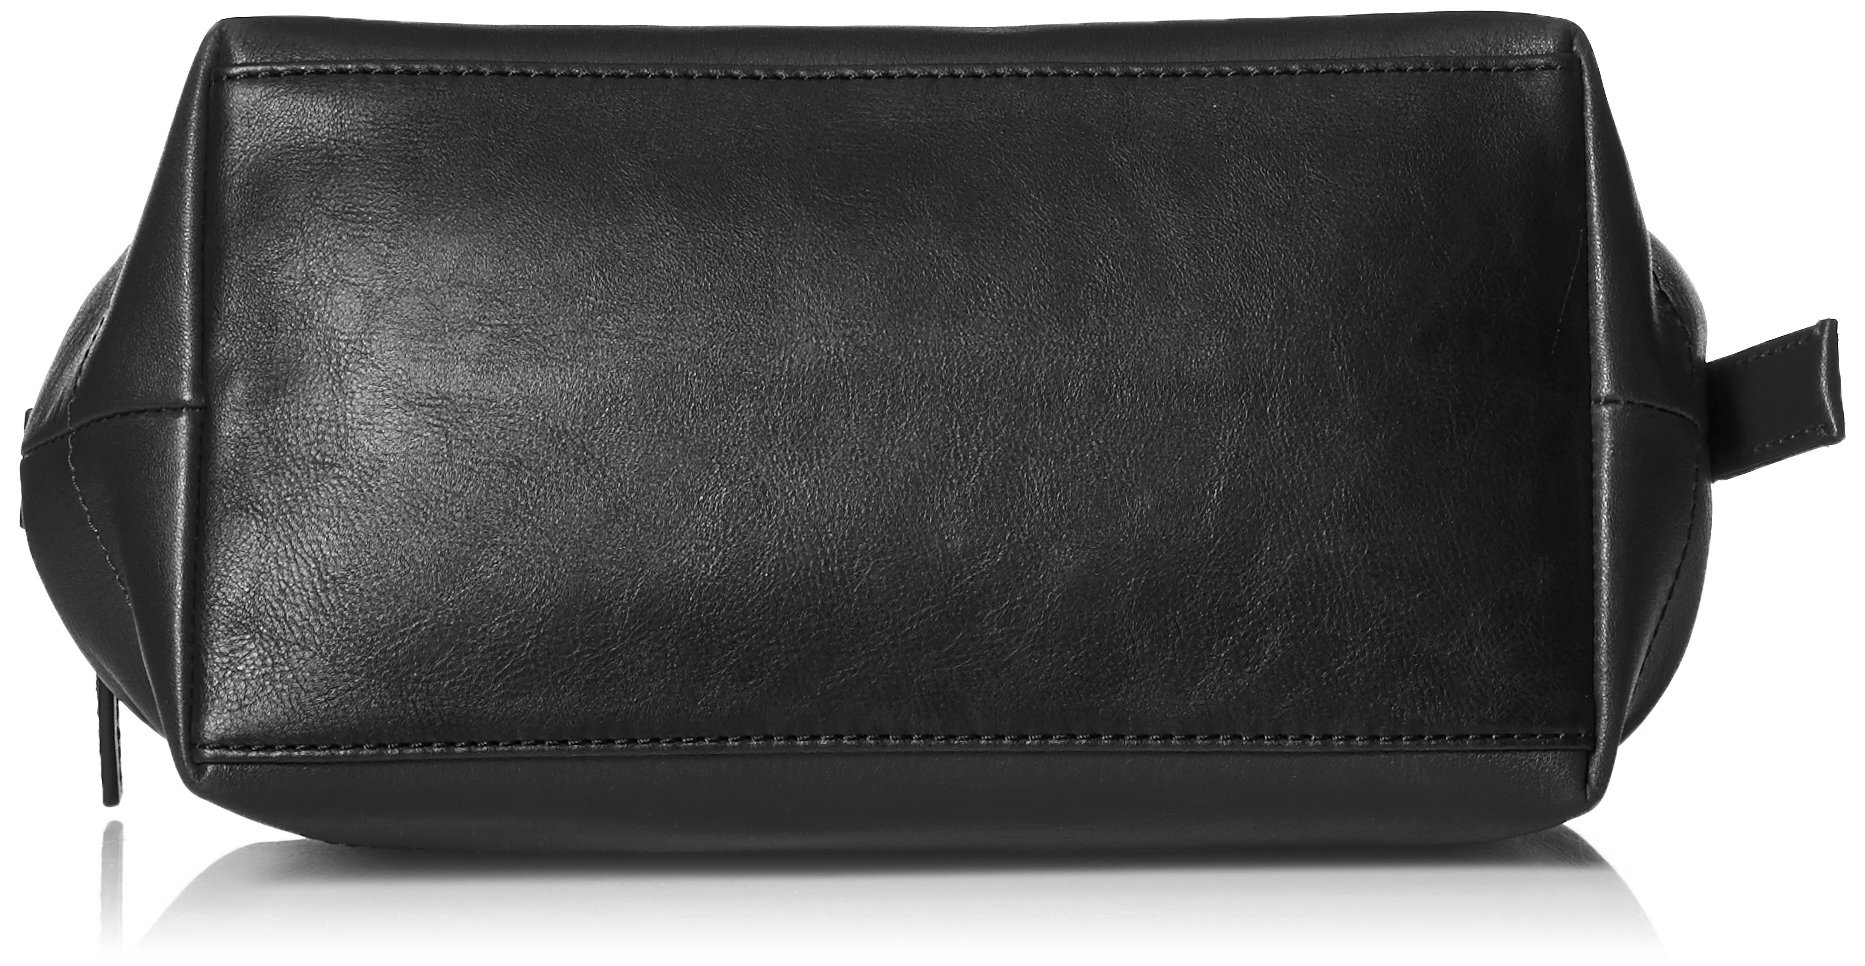 Fossil Men's Framed Shave Kit Black Accessory, -black, 10.3''L x 6''W x 5.5''H by Fossil (Image #4)